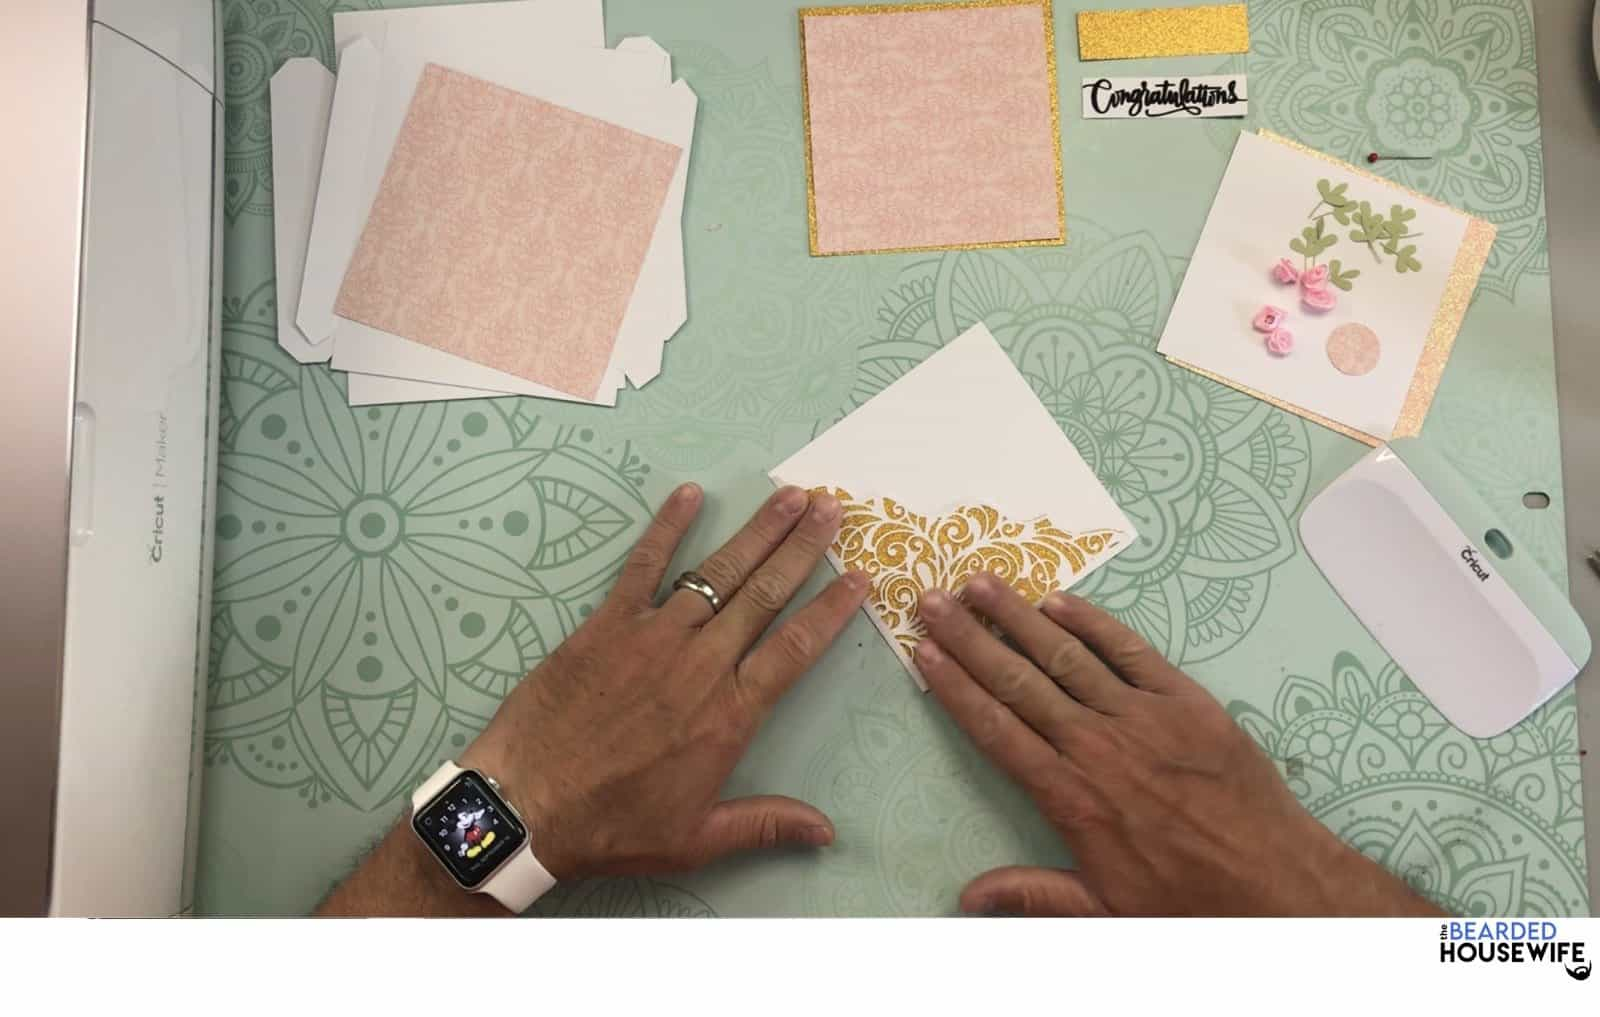 give the card a press with your hand to ensure the glue has adhered well